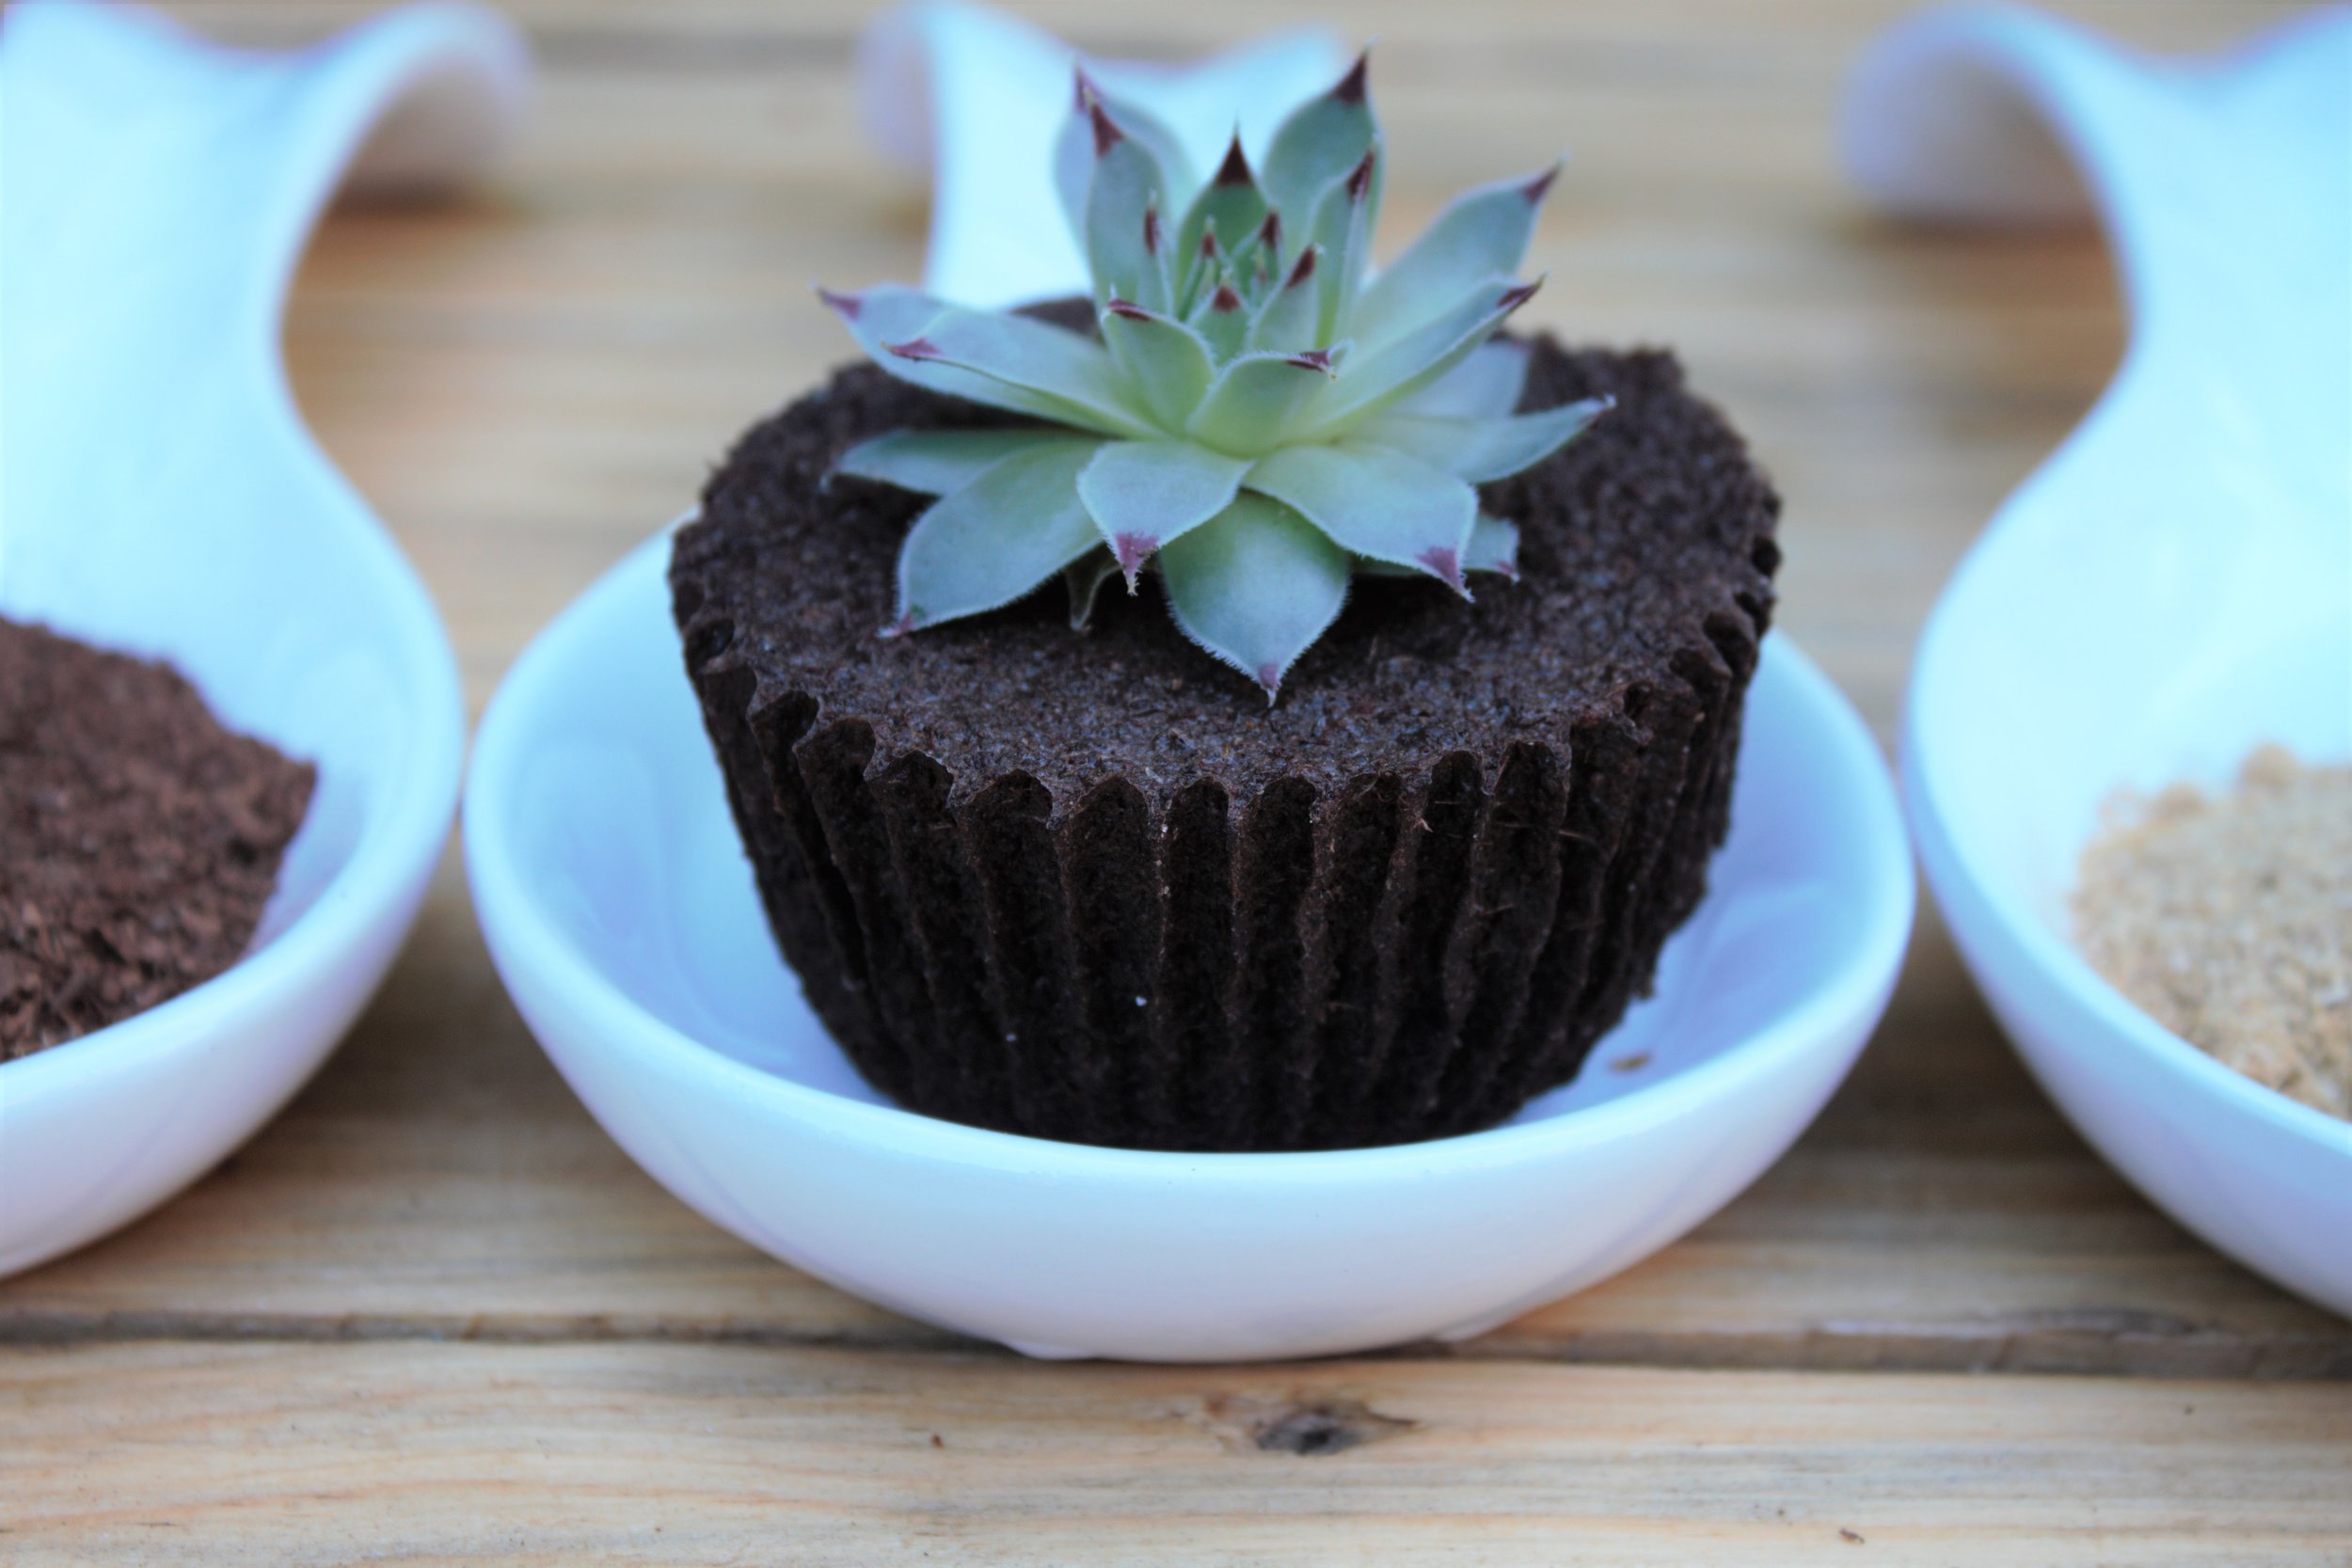 BotanicalCupcake Design - Sustainable Design 101